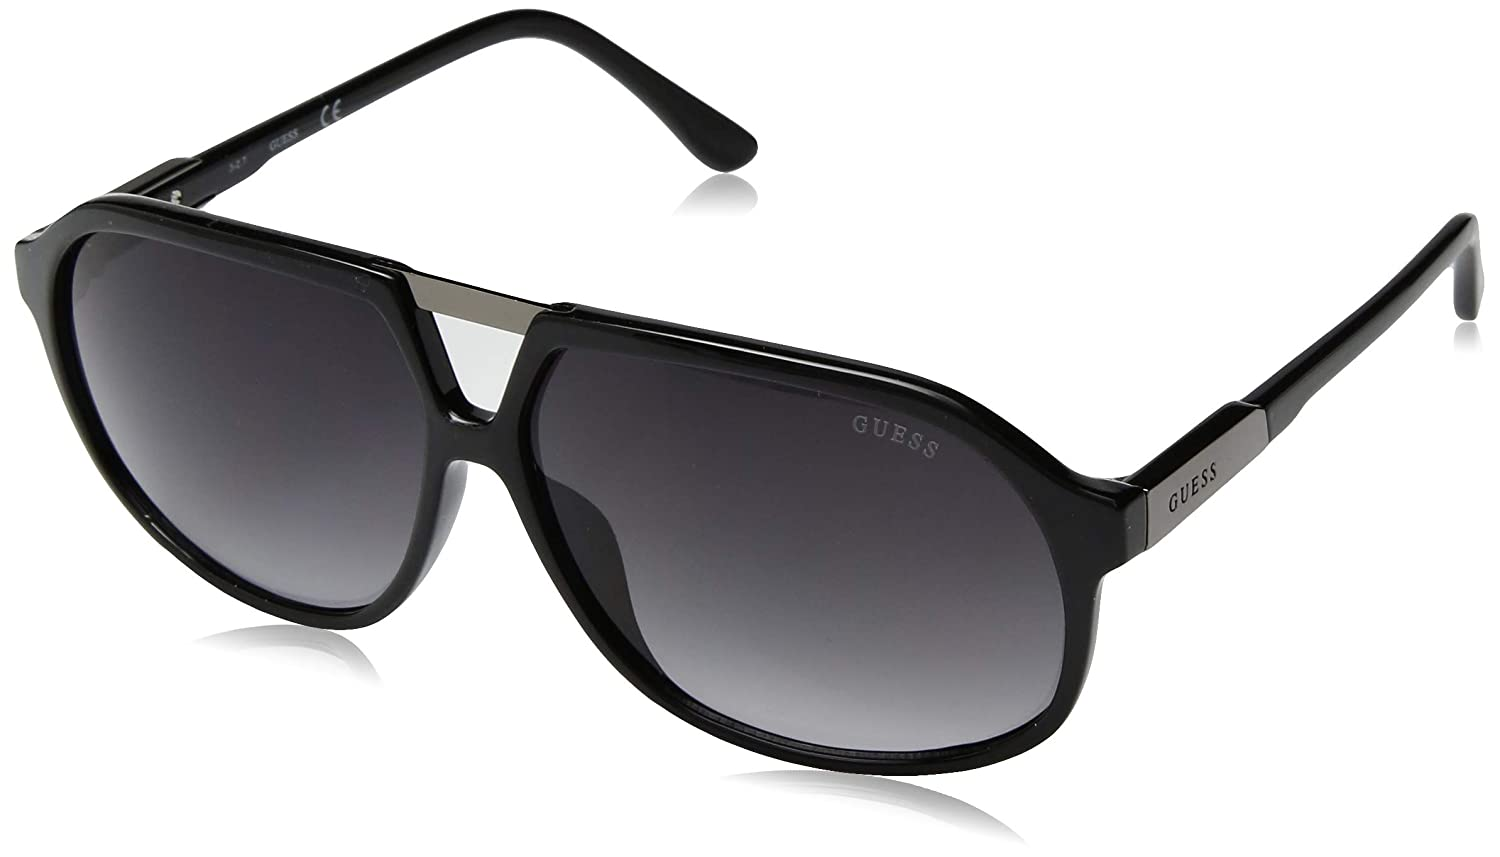 GUESS ユニセックスアダルト  Black/Smoke Gradient Lens B075FXMCPP